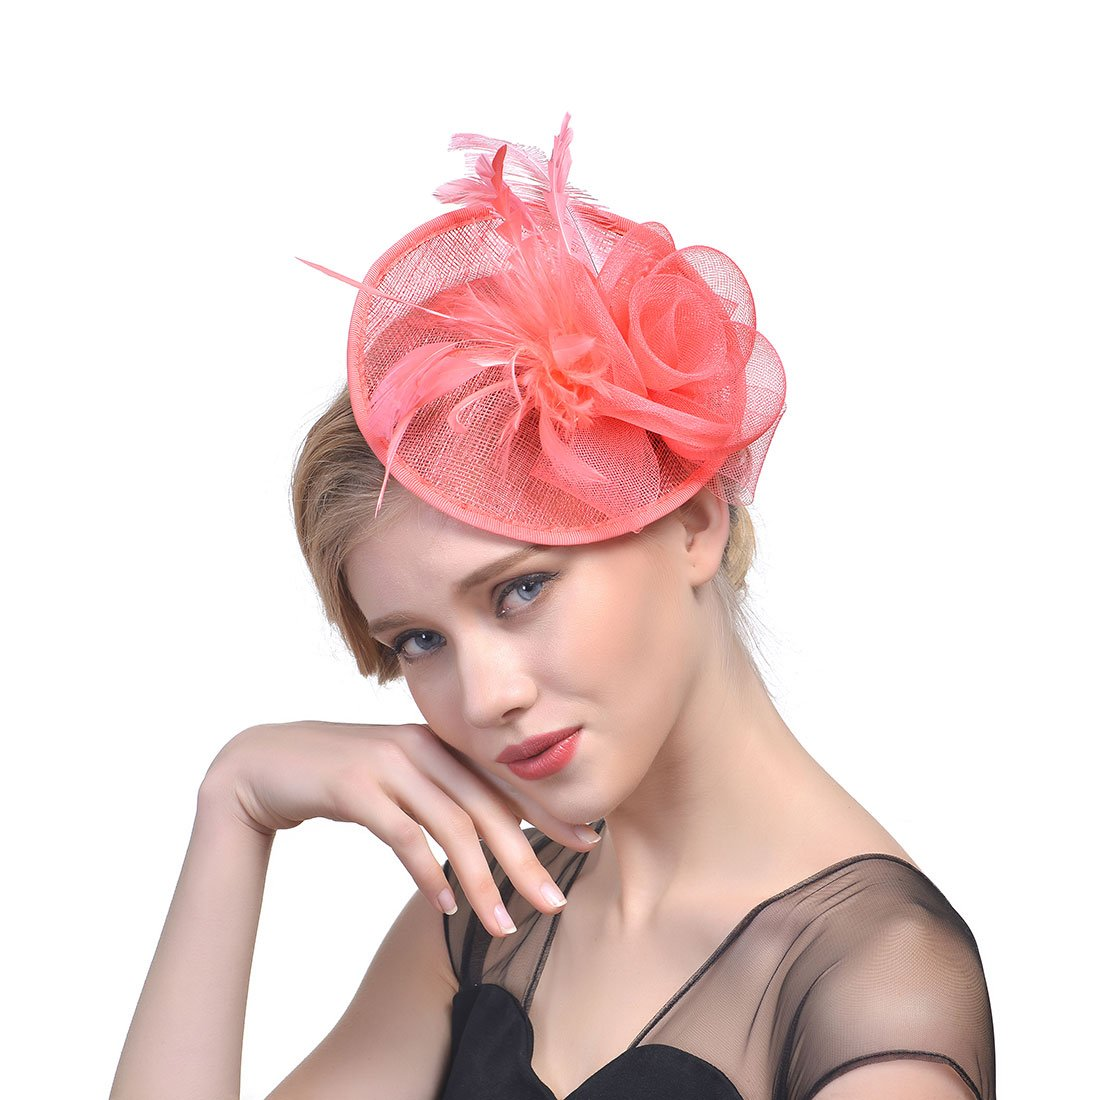 Canvalite Kentucky Derby Fascinator, Women Sinamay Hat Vintage Veil Headdress for Church Tea Party